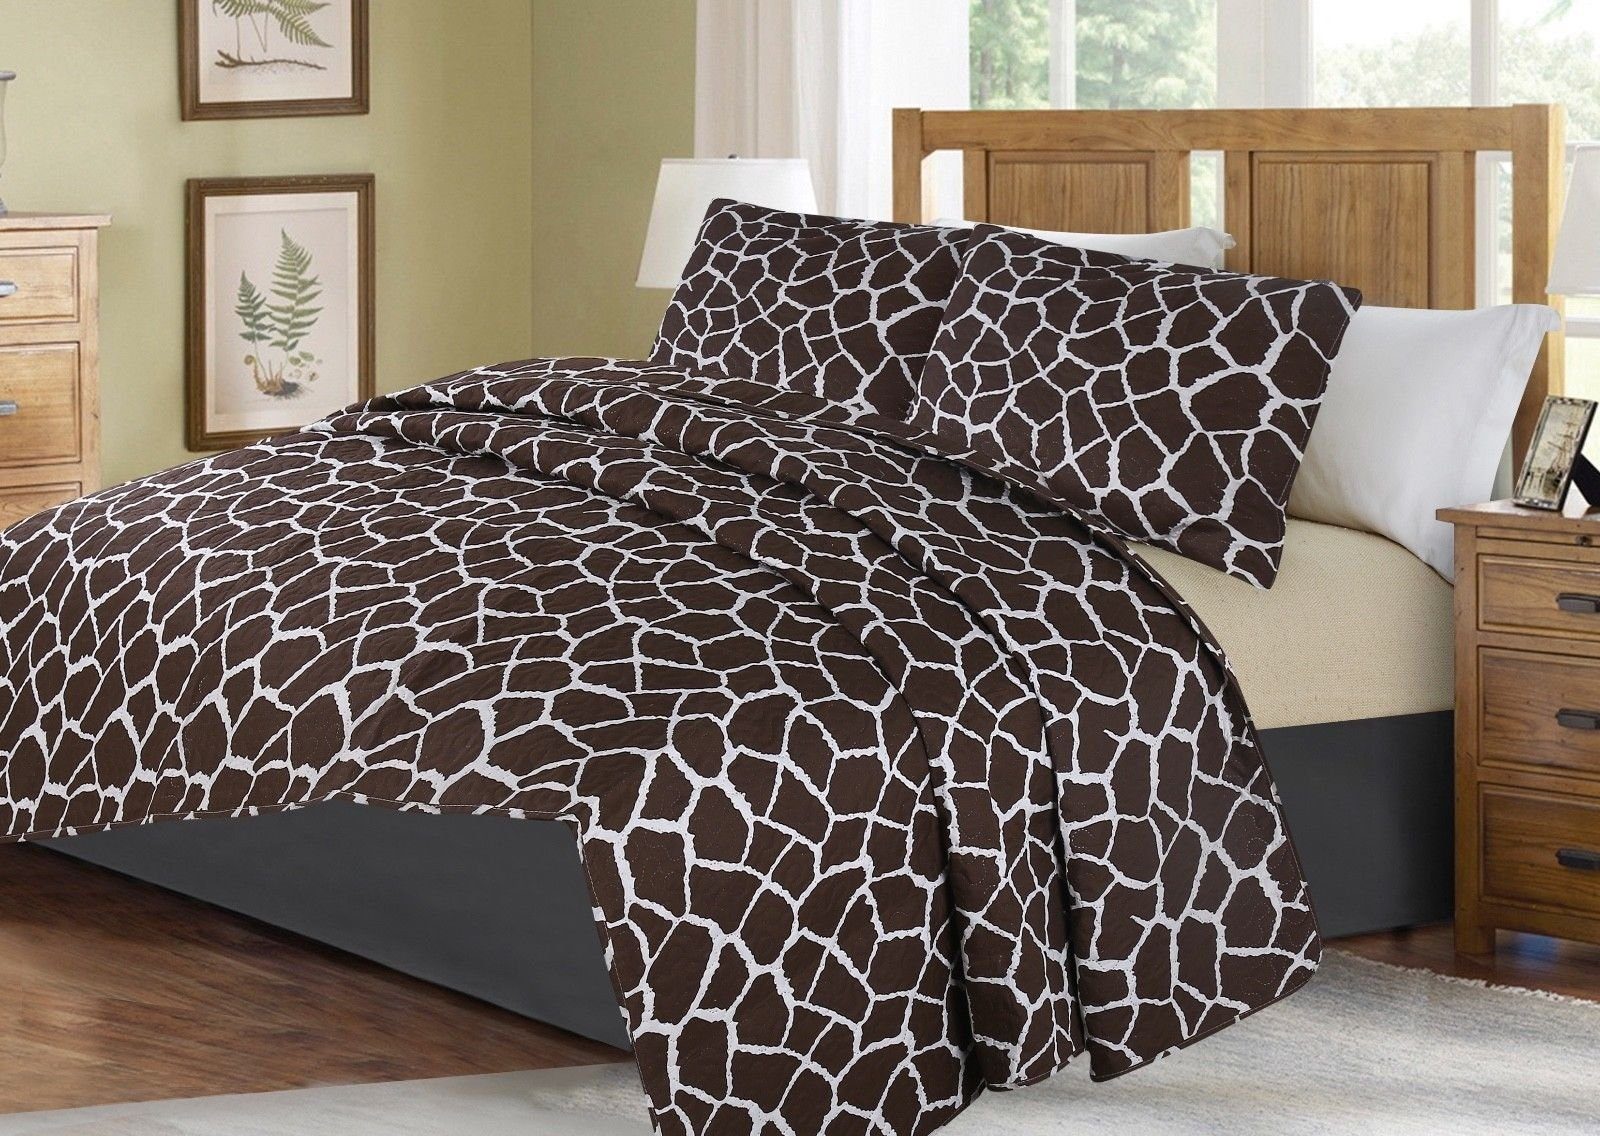 no!no! Printed Animal Designs Bedspread Coverlet Quilt Set with Pillow Shams Animal 4# Size Queen